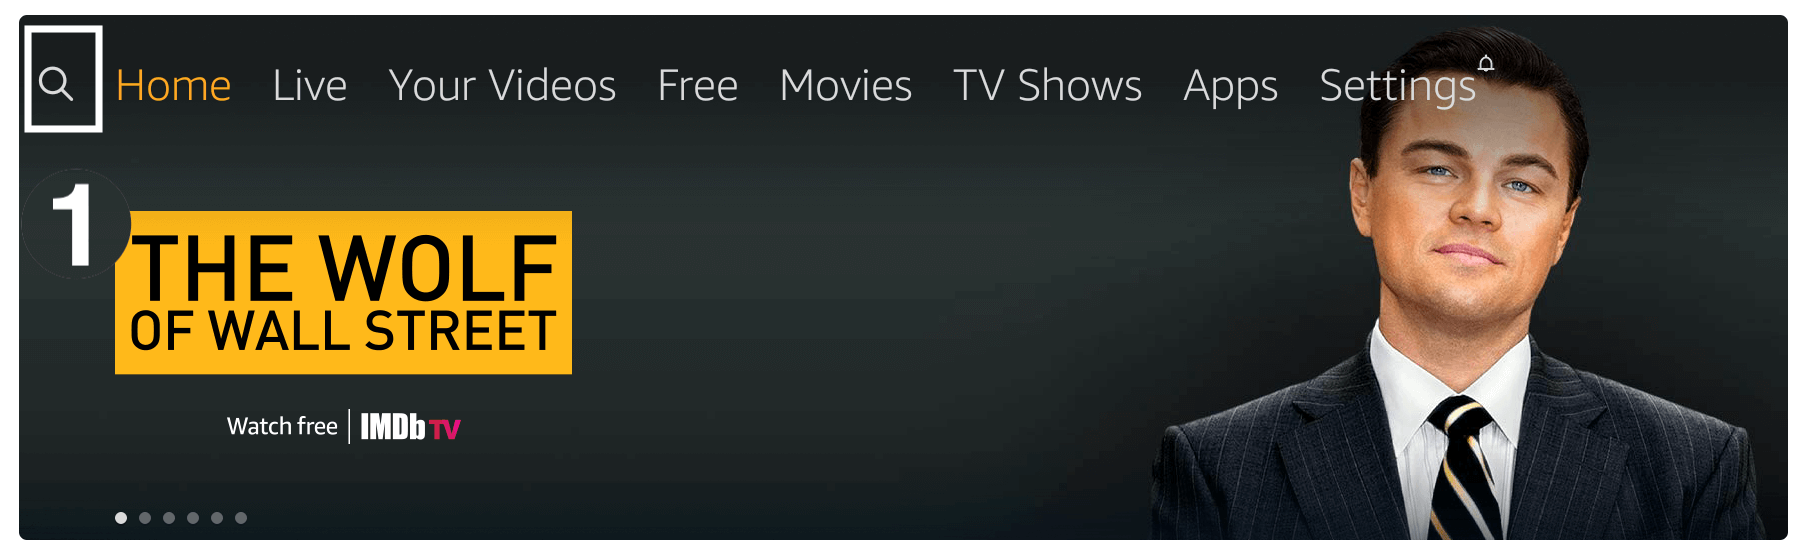 Freeview-Firestick-Device